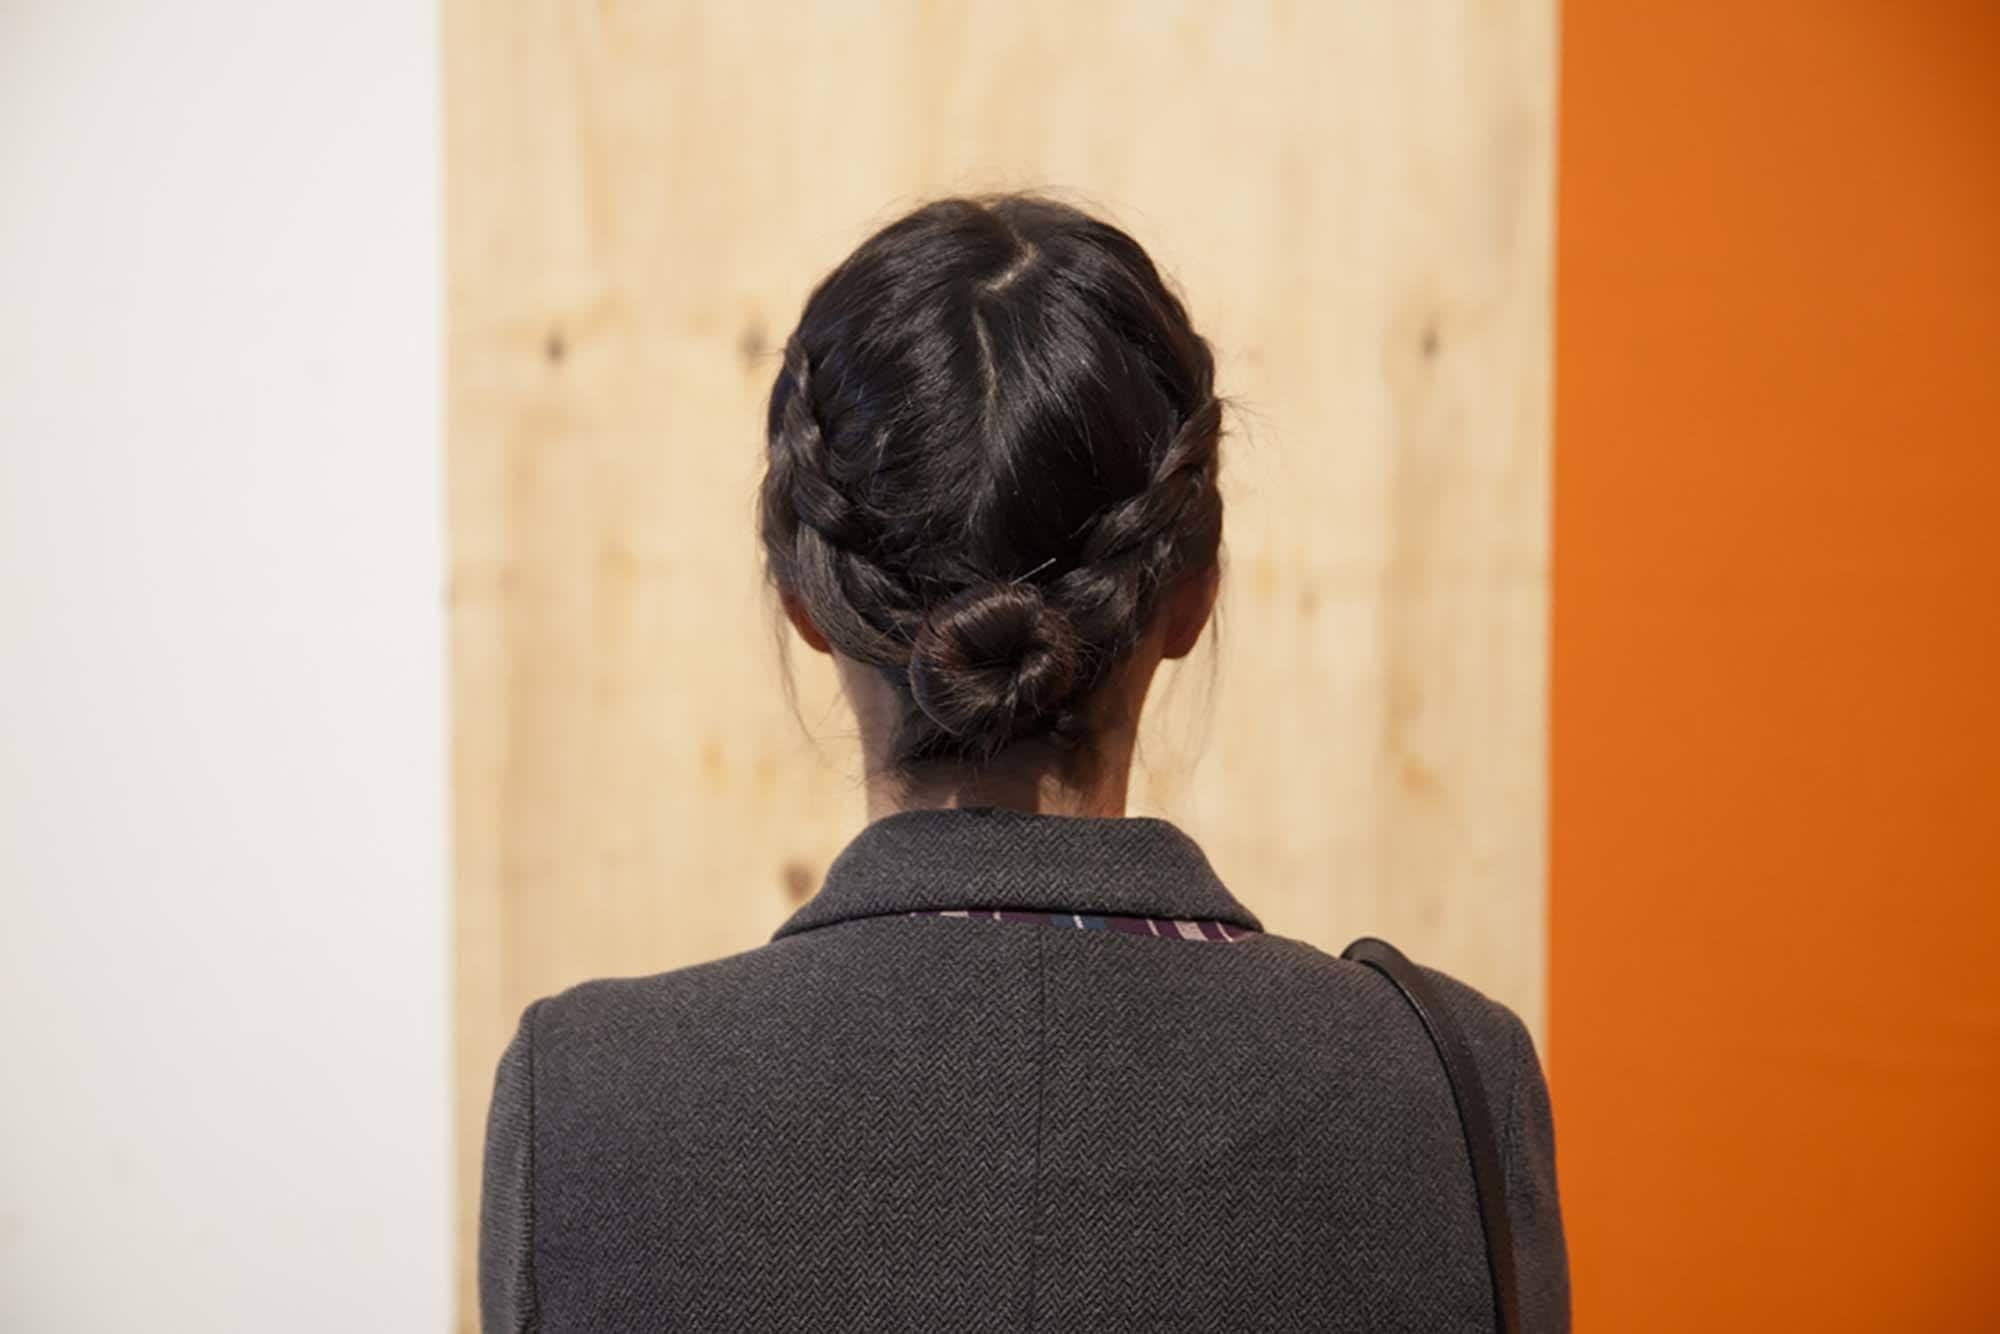 backshot of woman with low braided bun hairstyle spfw shot